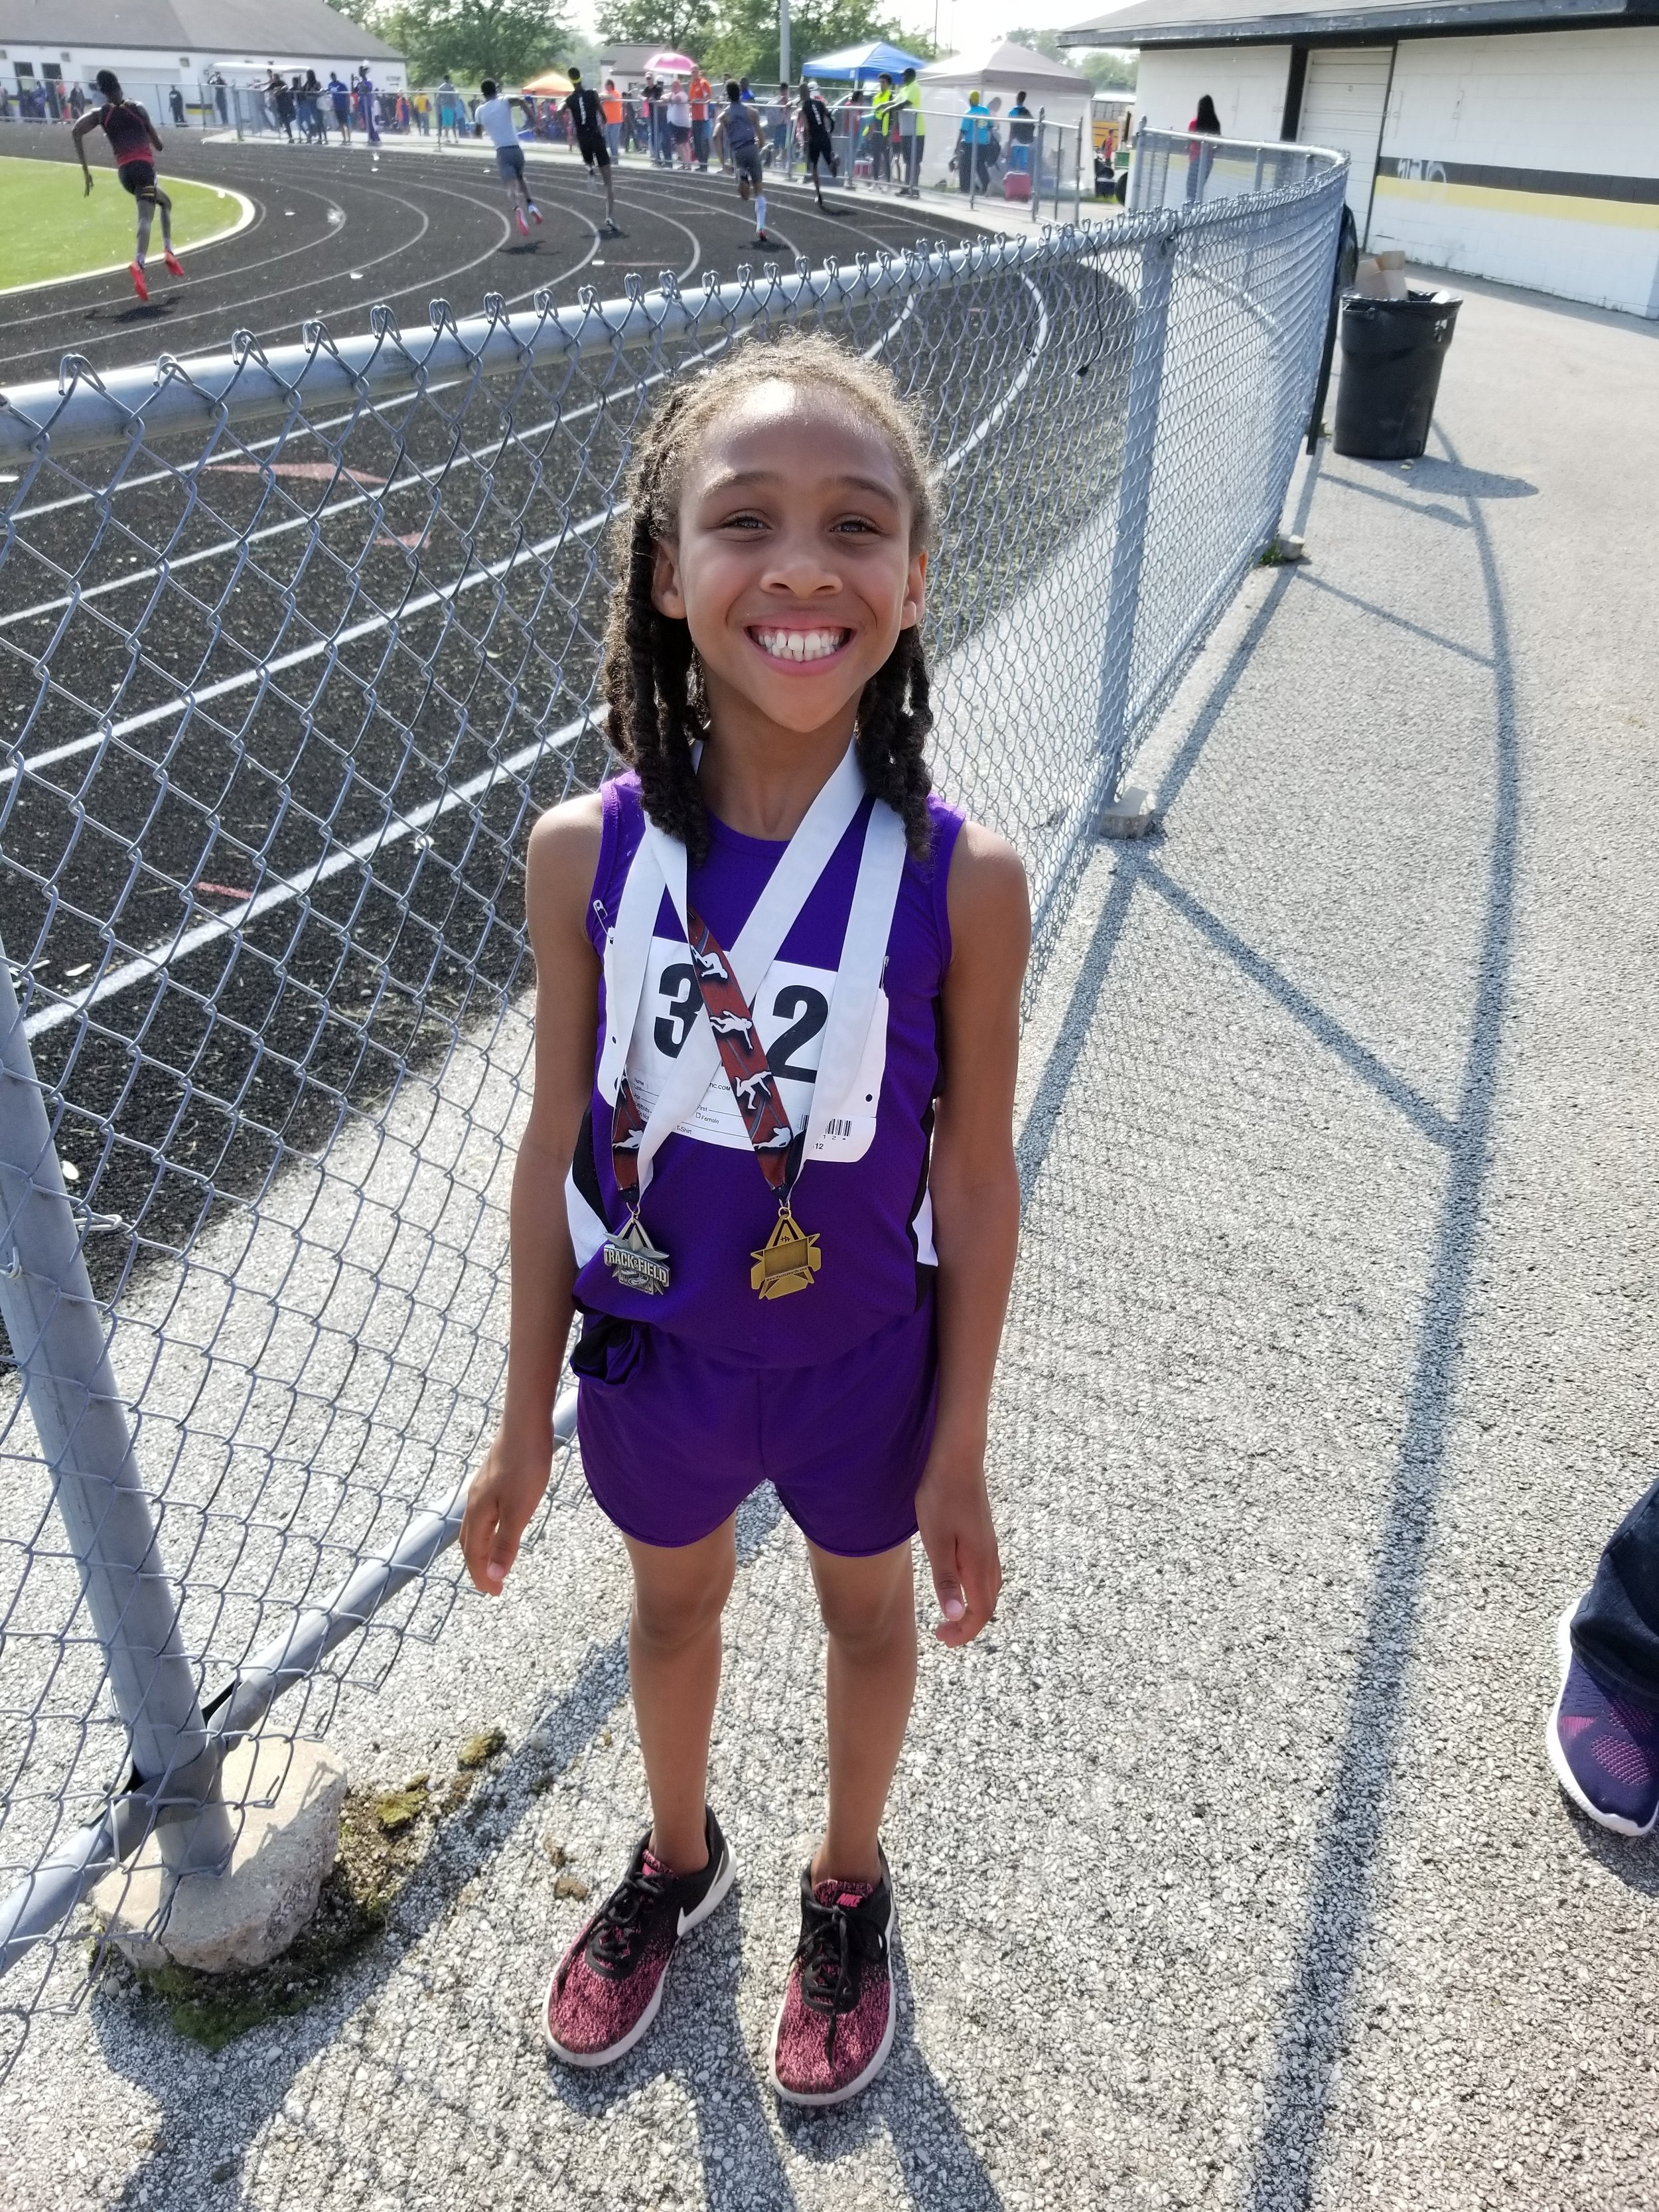 Alaina Steele 8 And Under 200m Champion and 100m Runner-up First career track & Field meet.